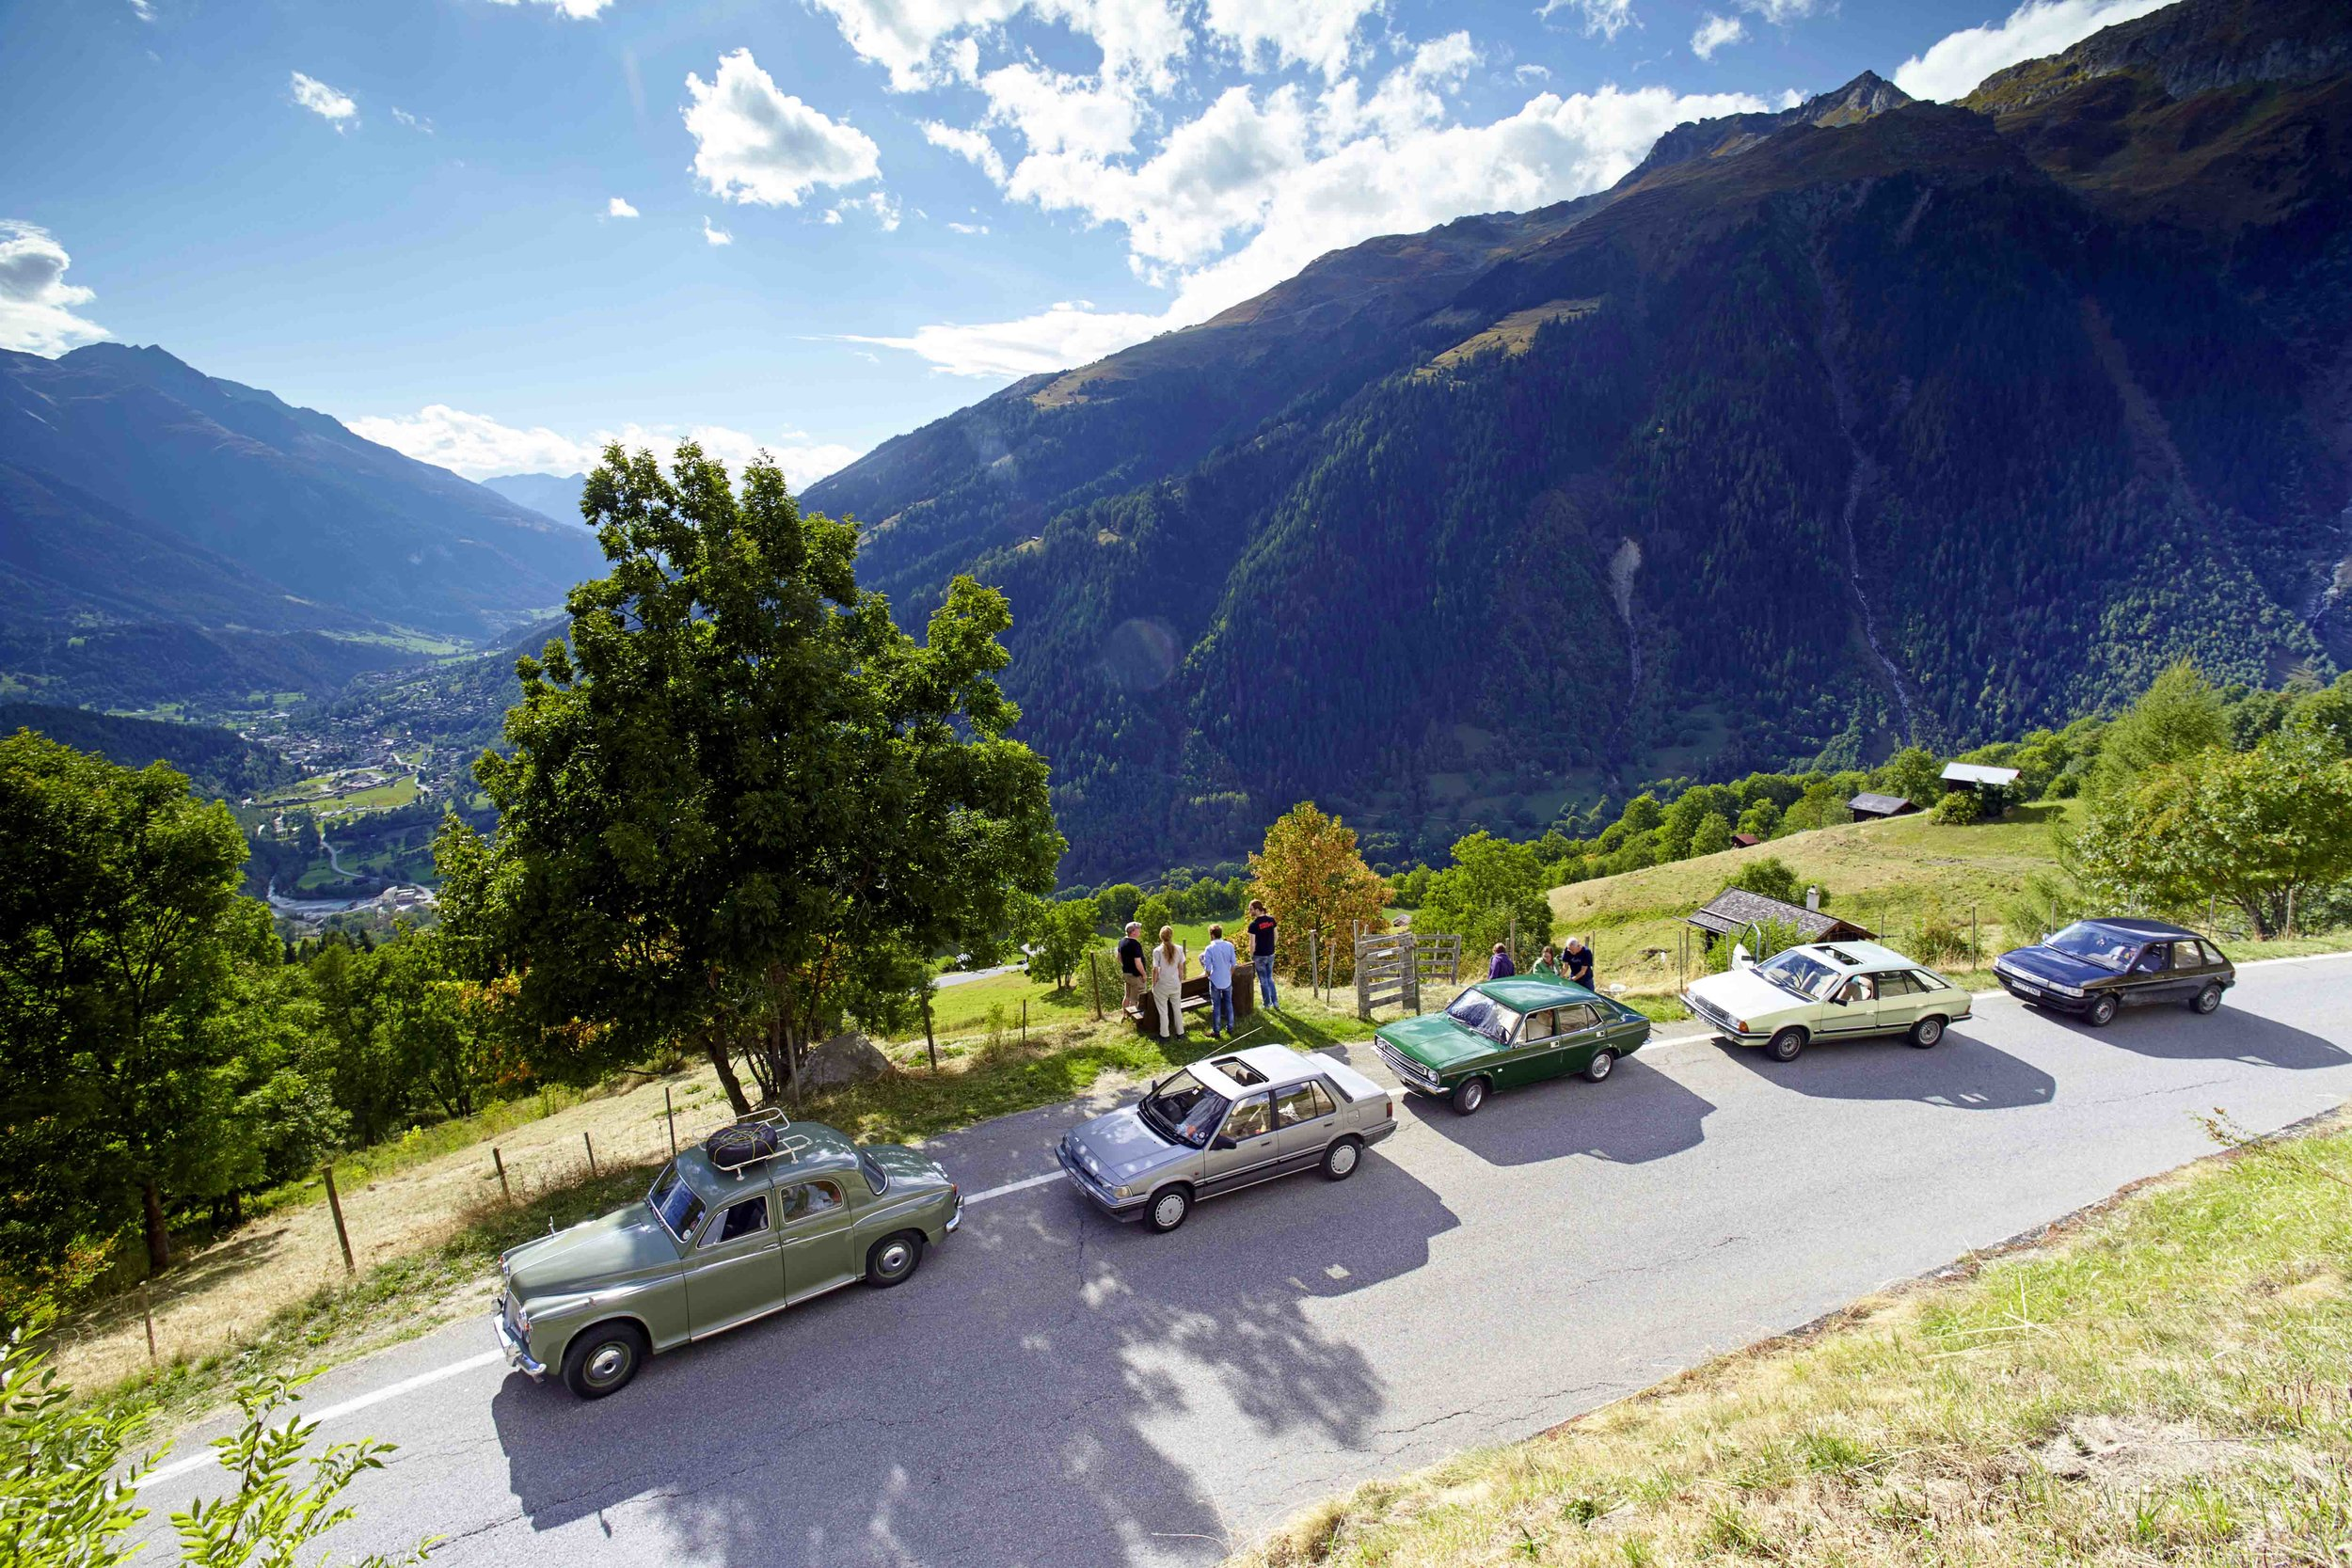 £750 classics go to Switzerland... Or do they? Find out more when you buy the latest issue of Practical Classics.